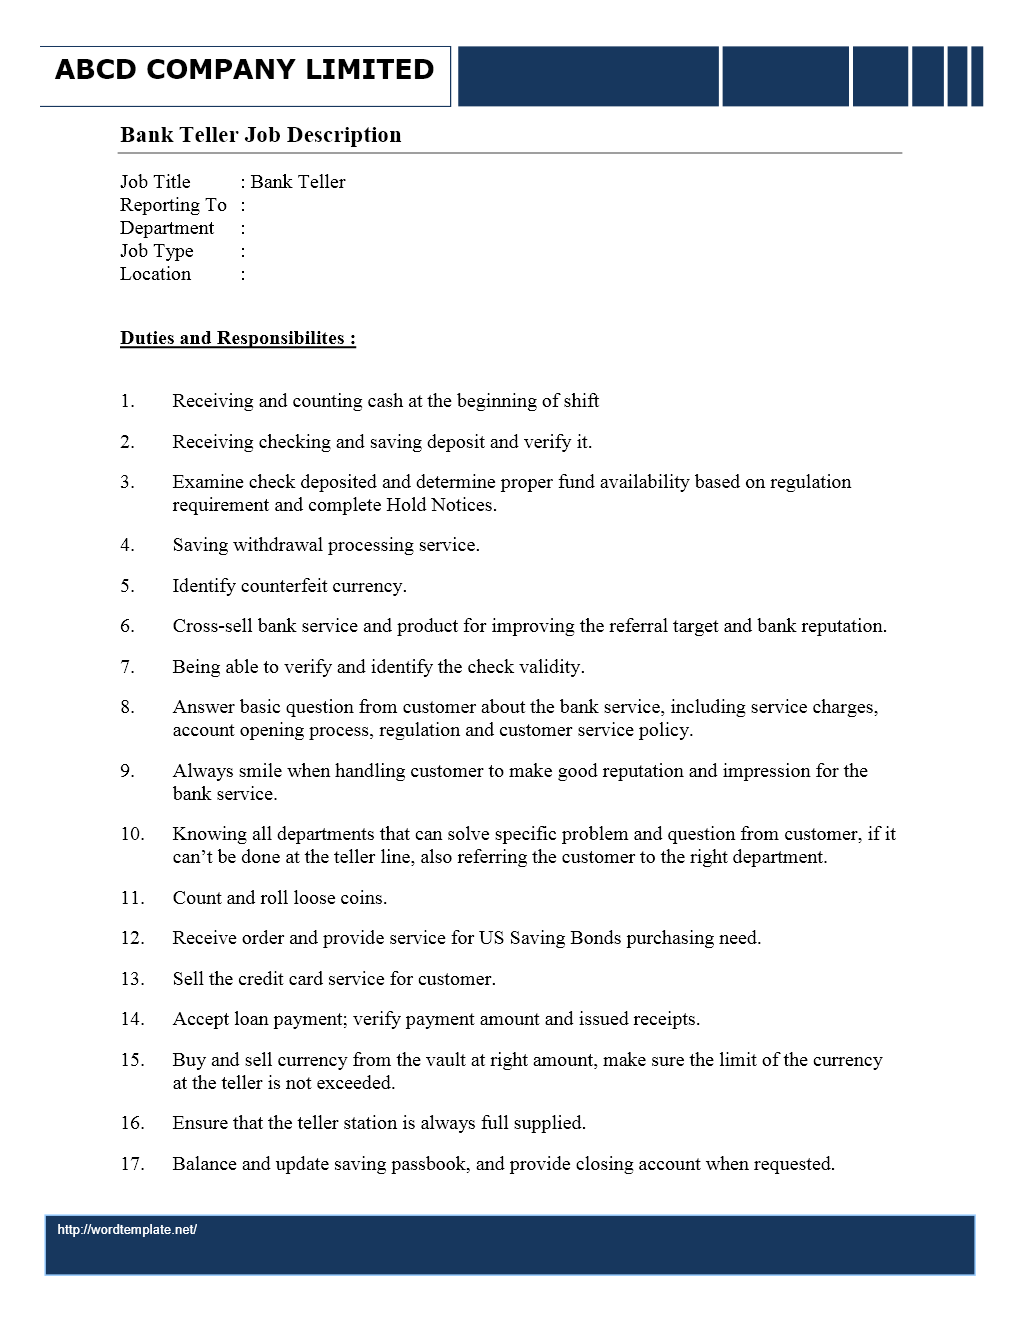 Bank Teller Job Description Resume Sample - SampleBusinessResume ...